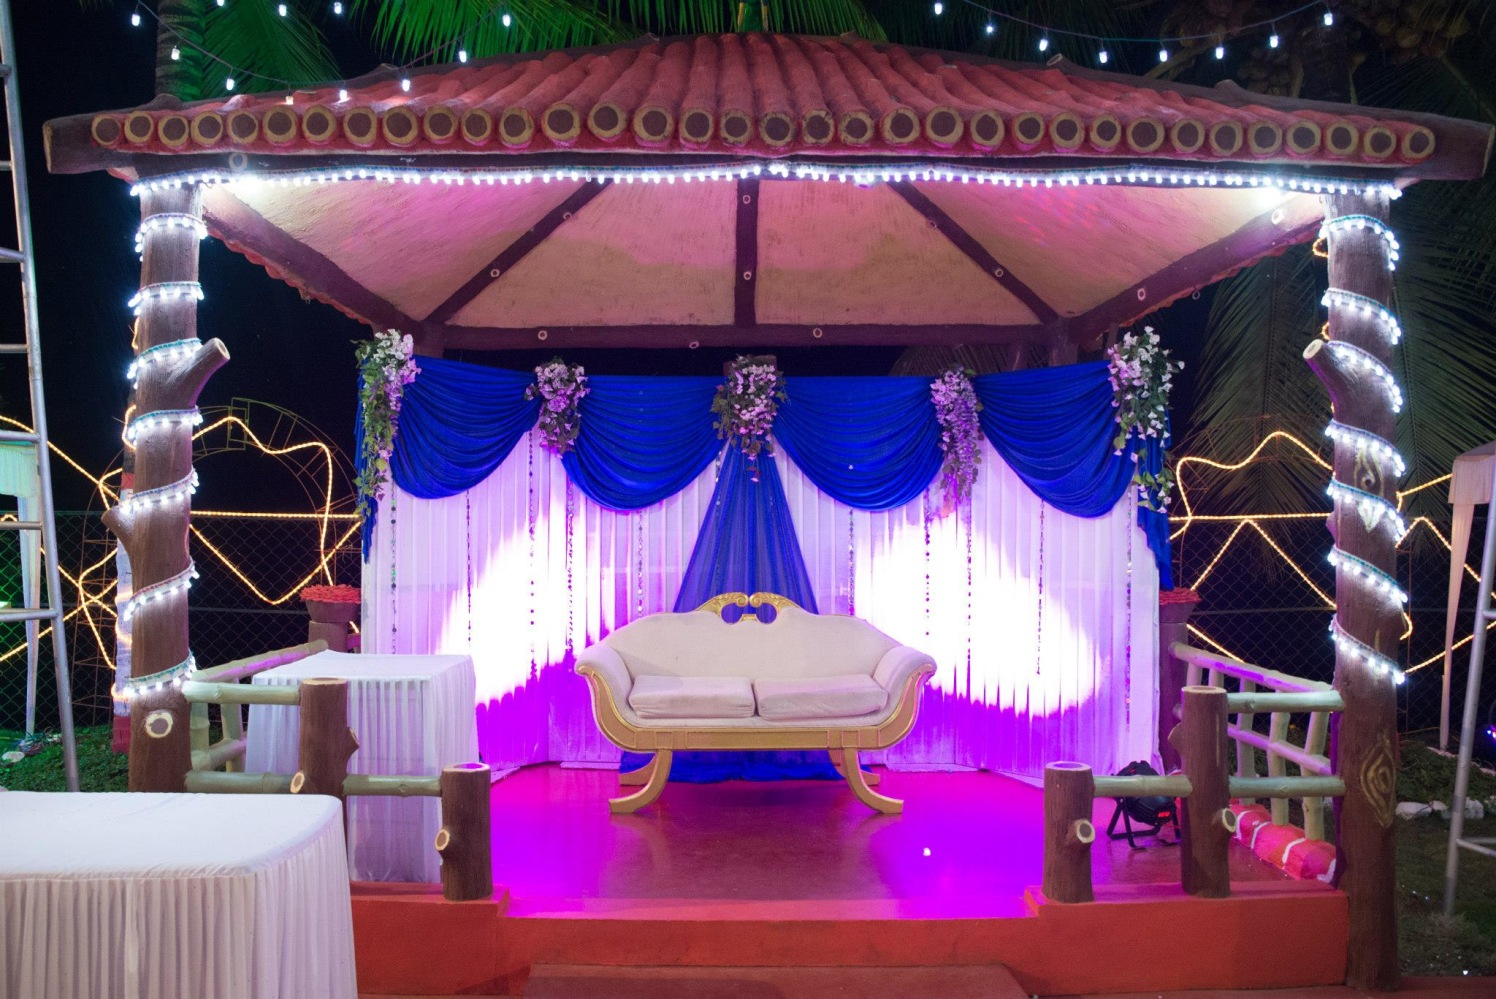 Hut Style Stage Setup With Blue And White Curtains And String Lights by Terence Savio Pimenta Wedding-decor | Weddings Photos & Ideas